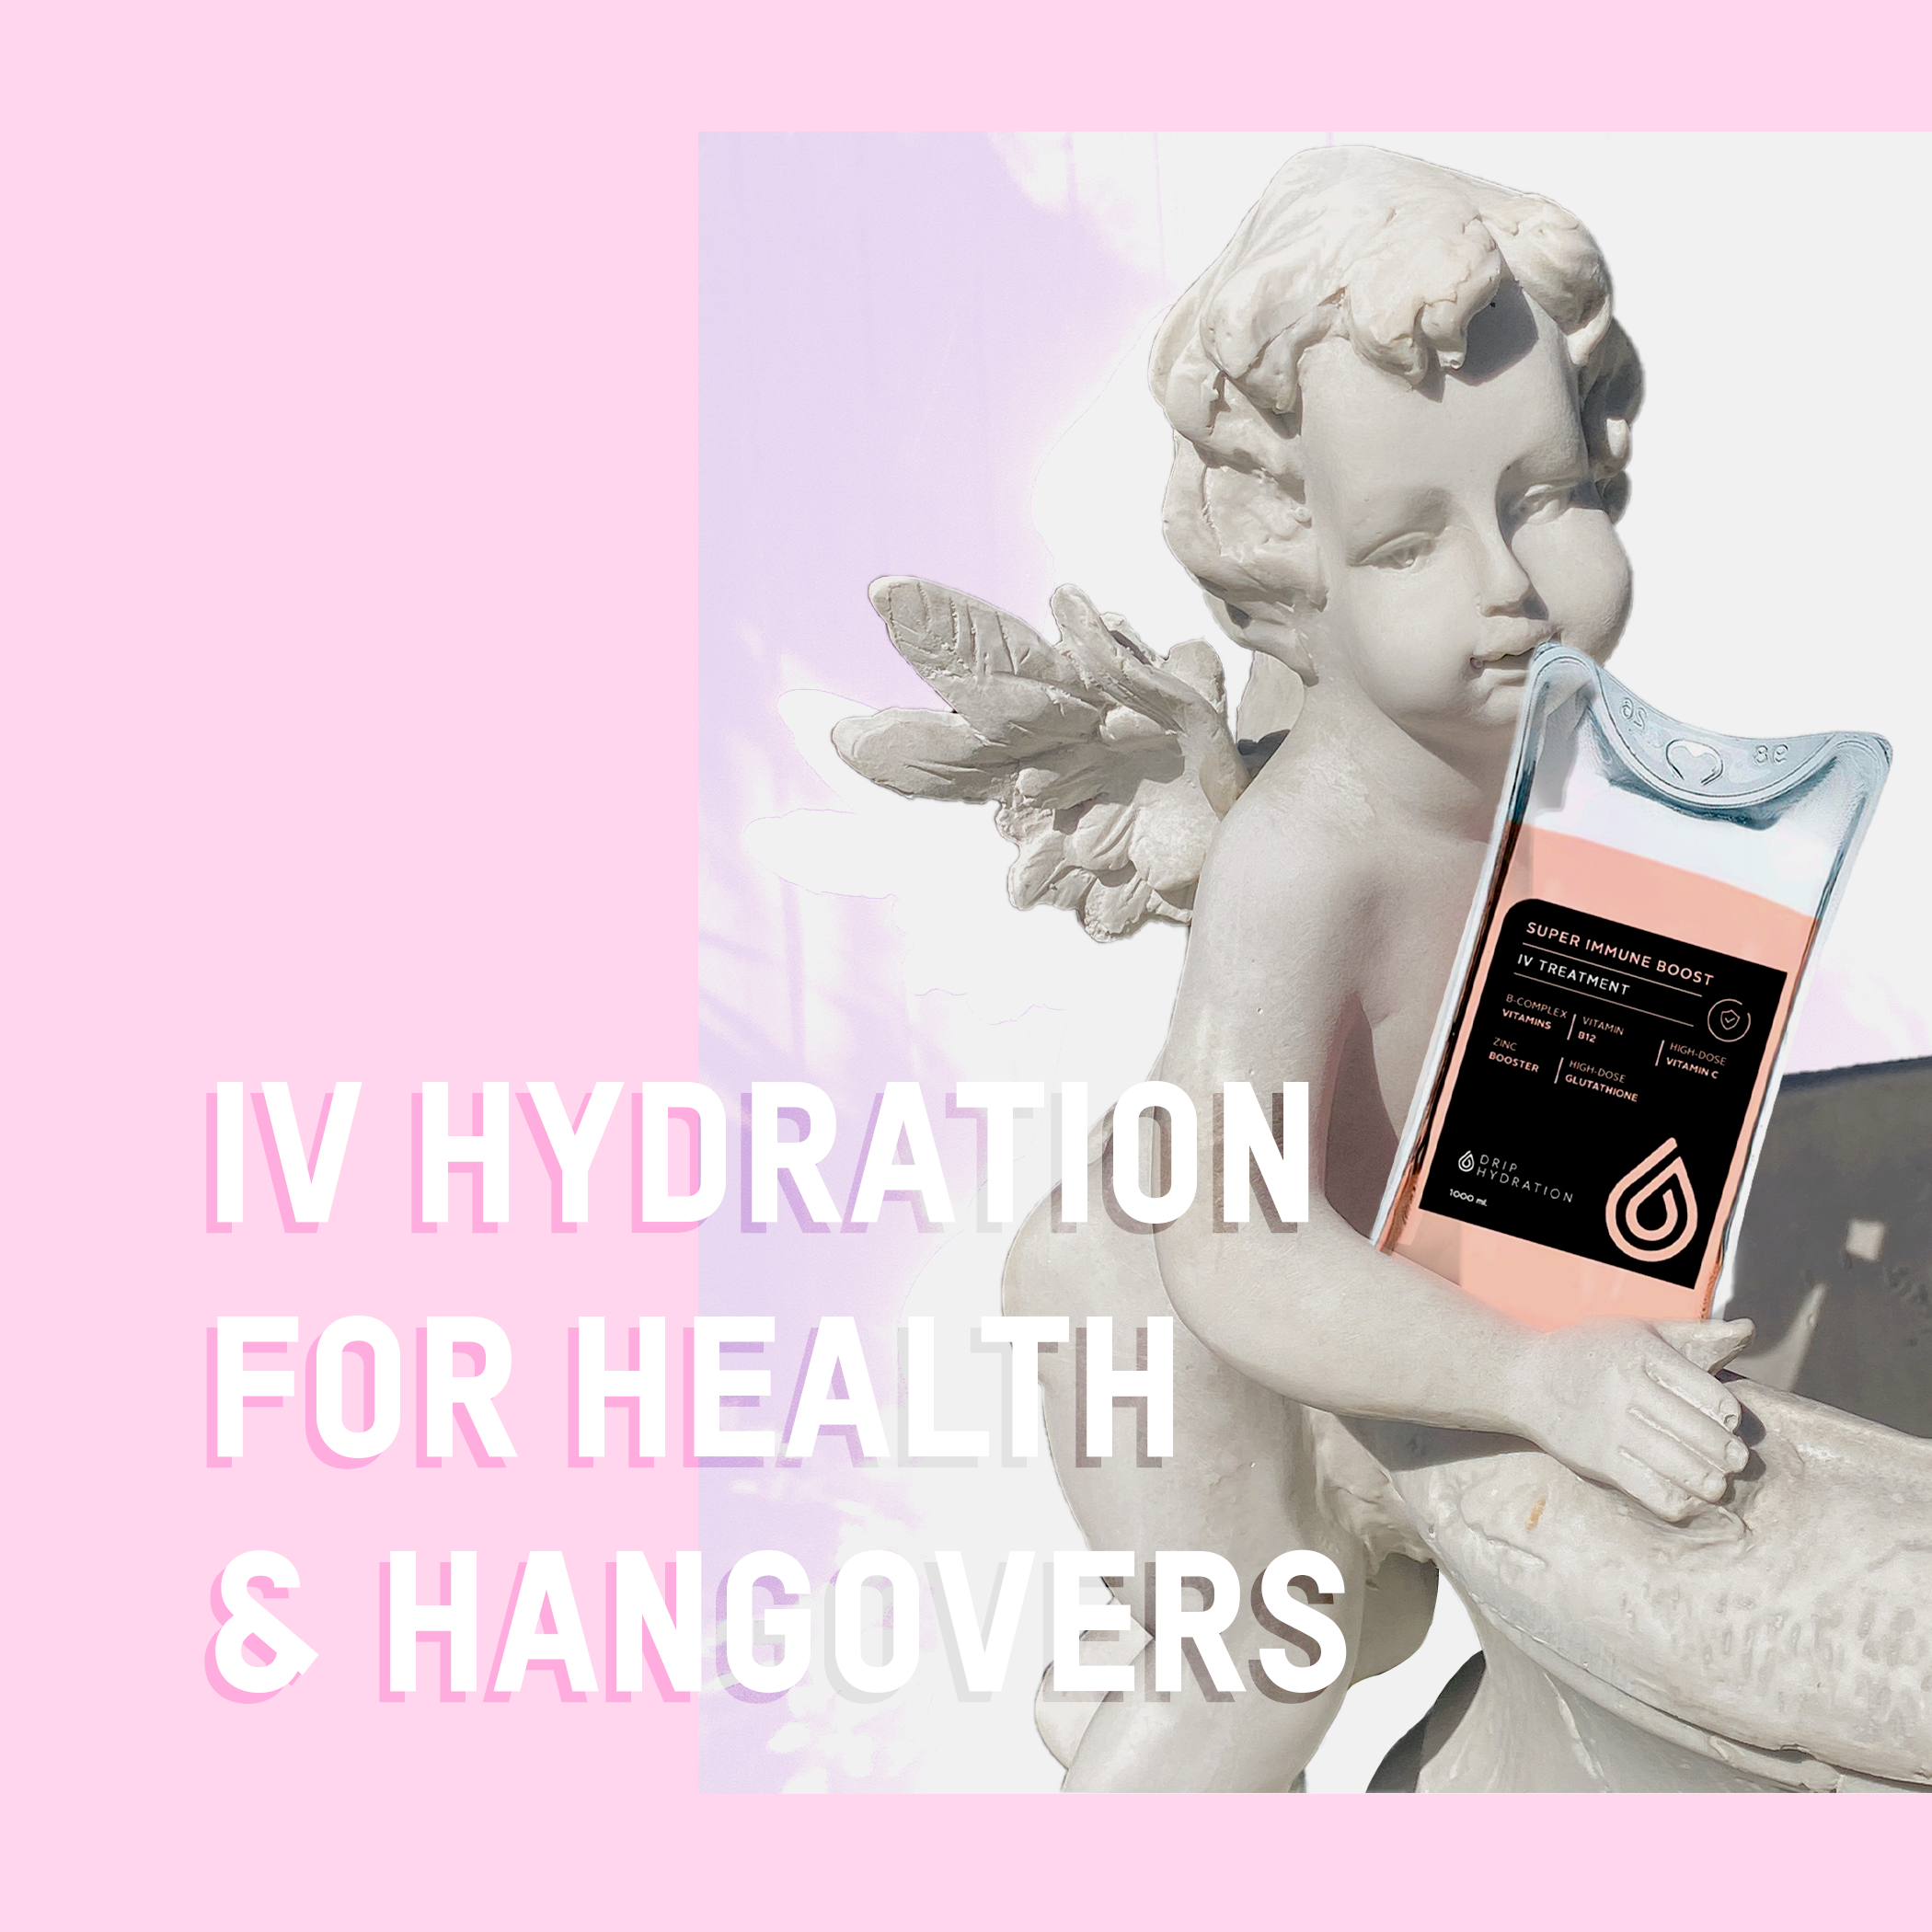 IV Hydration Therapy For Health & Hangovers